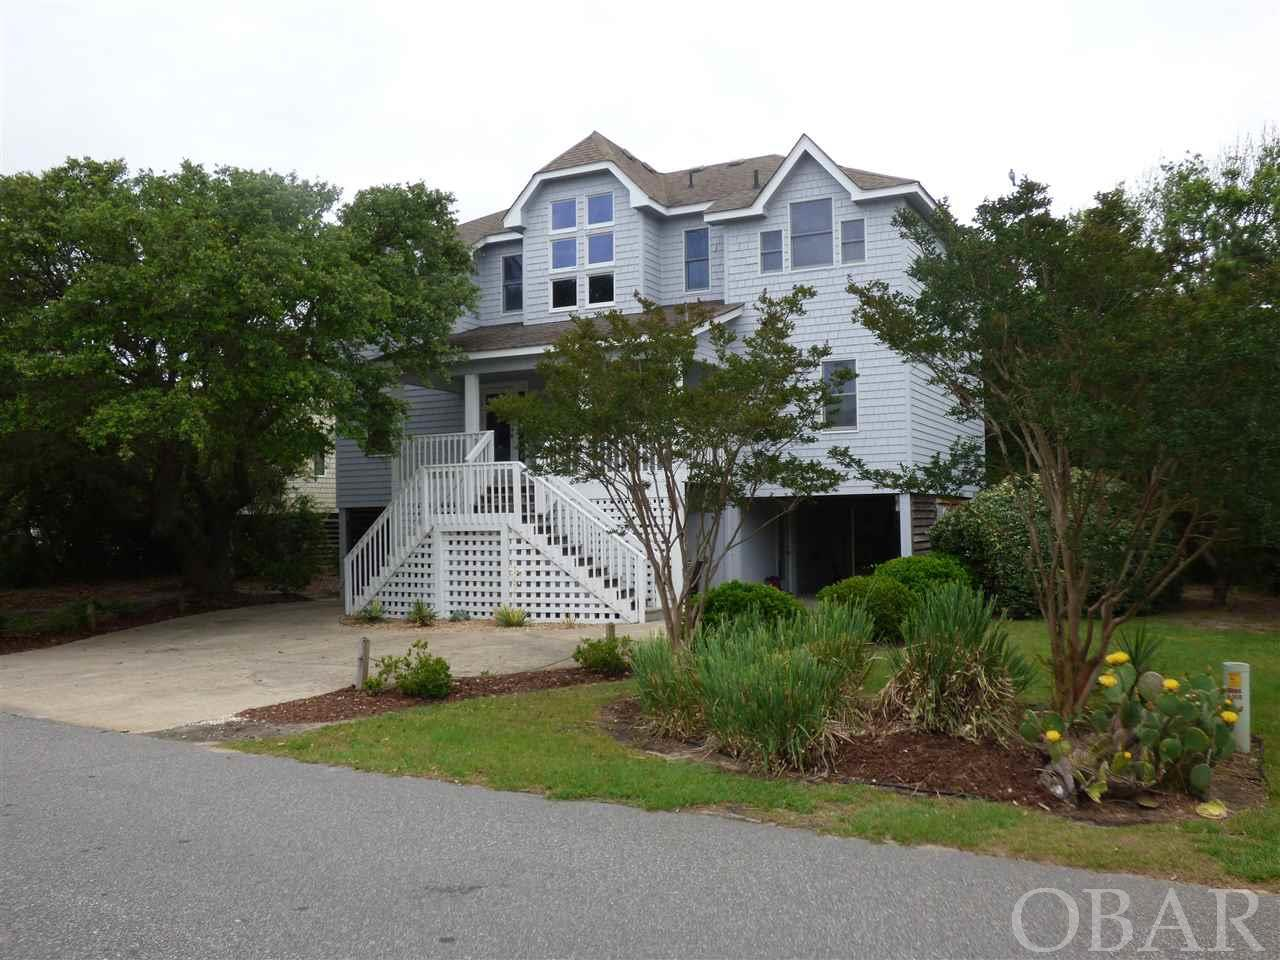 1157 Franklyn Street, Corolla, NC 27927, 5 Bedrooms Bedrooms, ,5 BathroomsBathrooms,Residential,For sale,Franklyn Street,105991